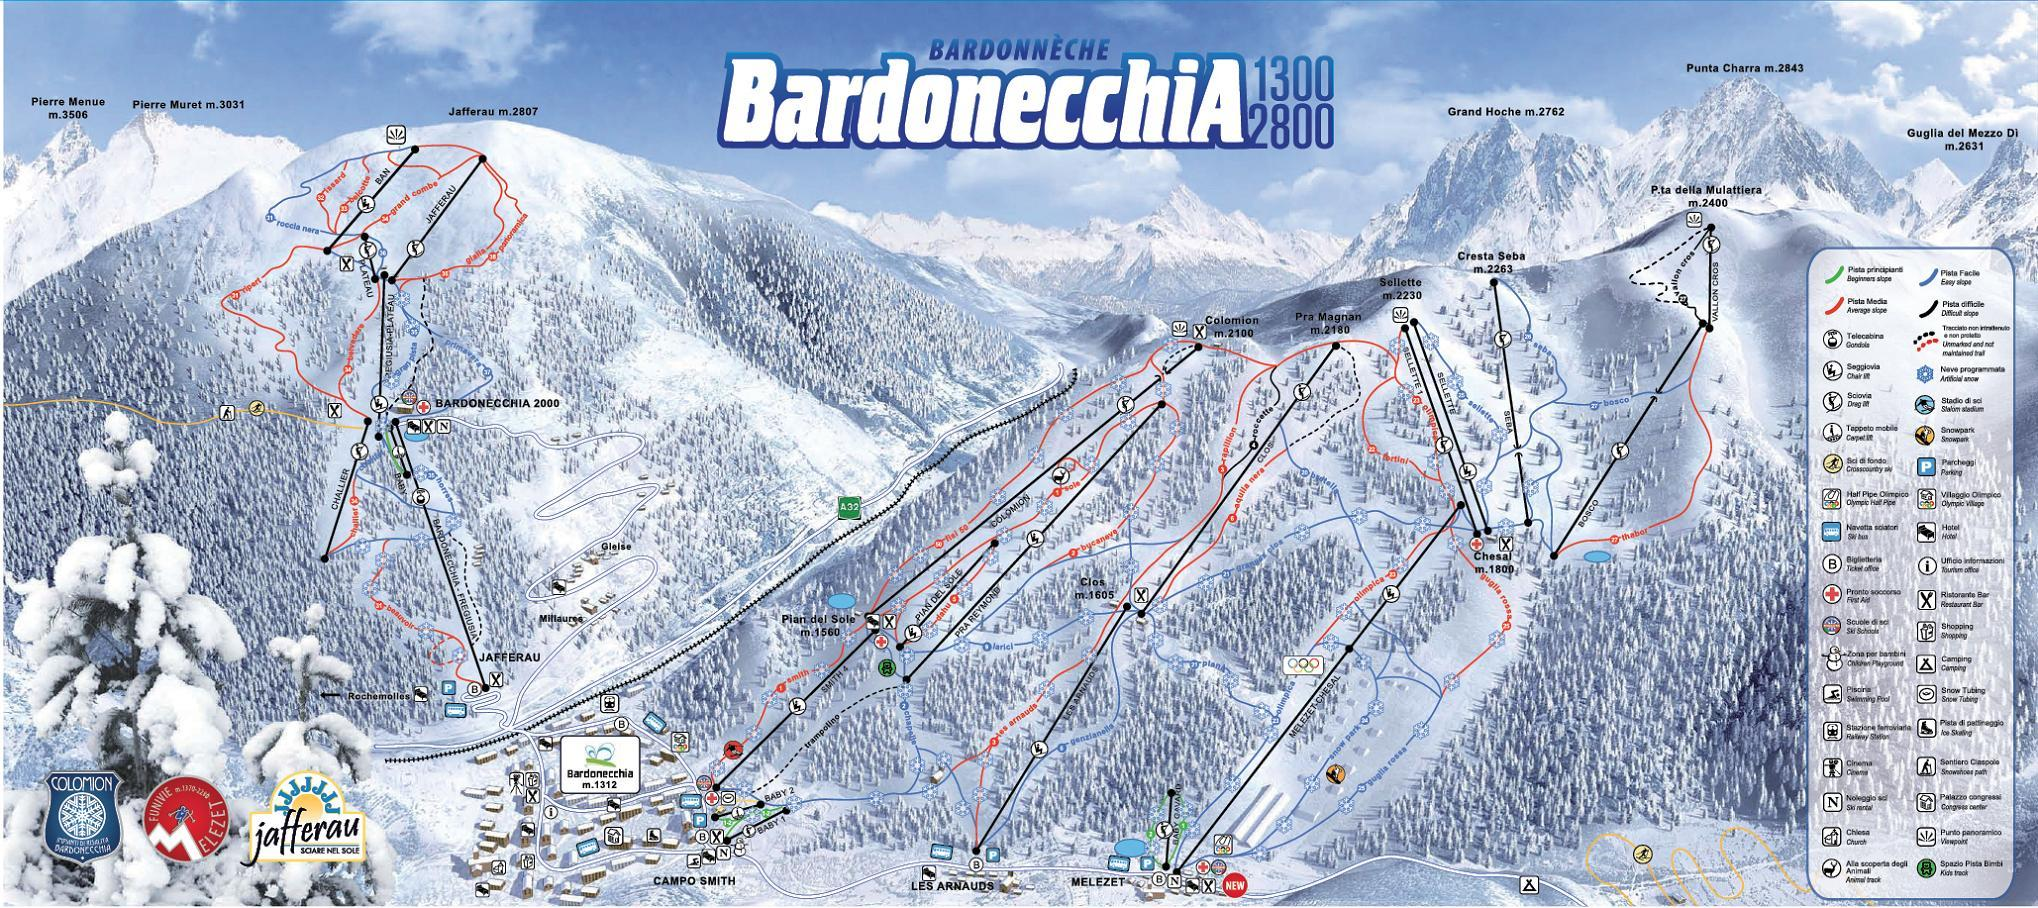 Pistes Map Of Bardonecchia